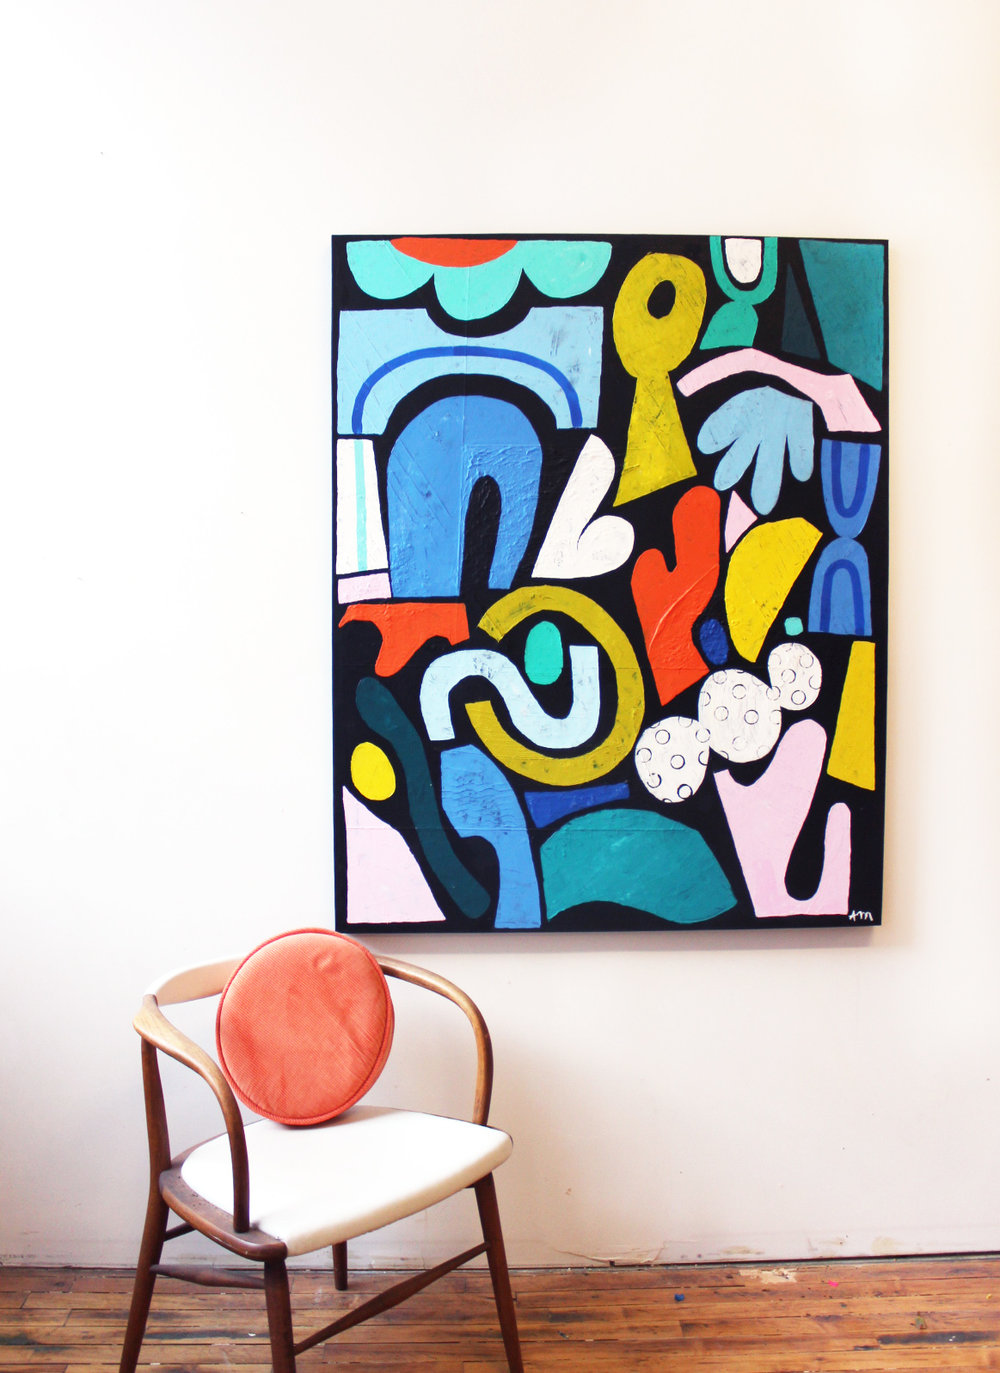 Abstract_Painting_40x50_AshleyMary_002